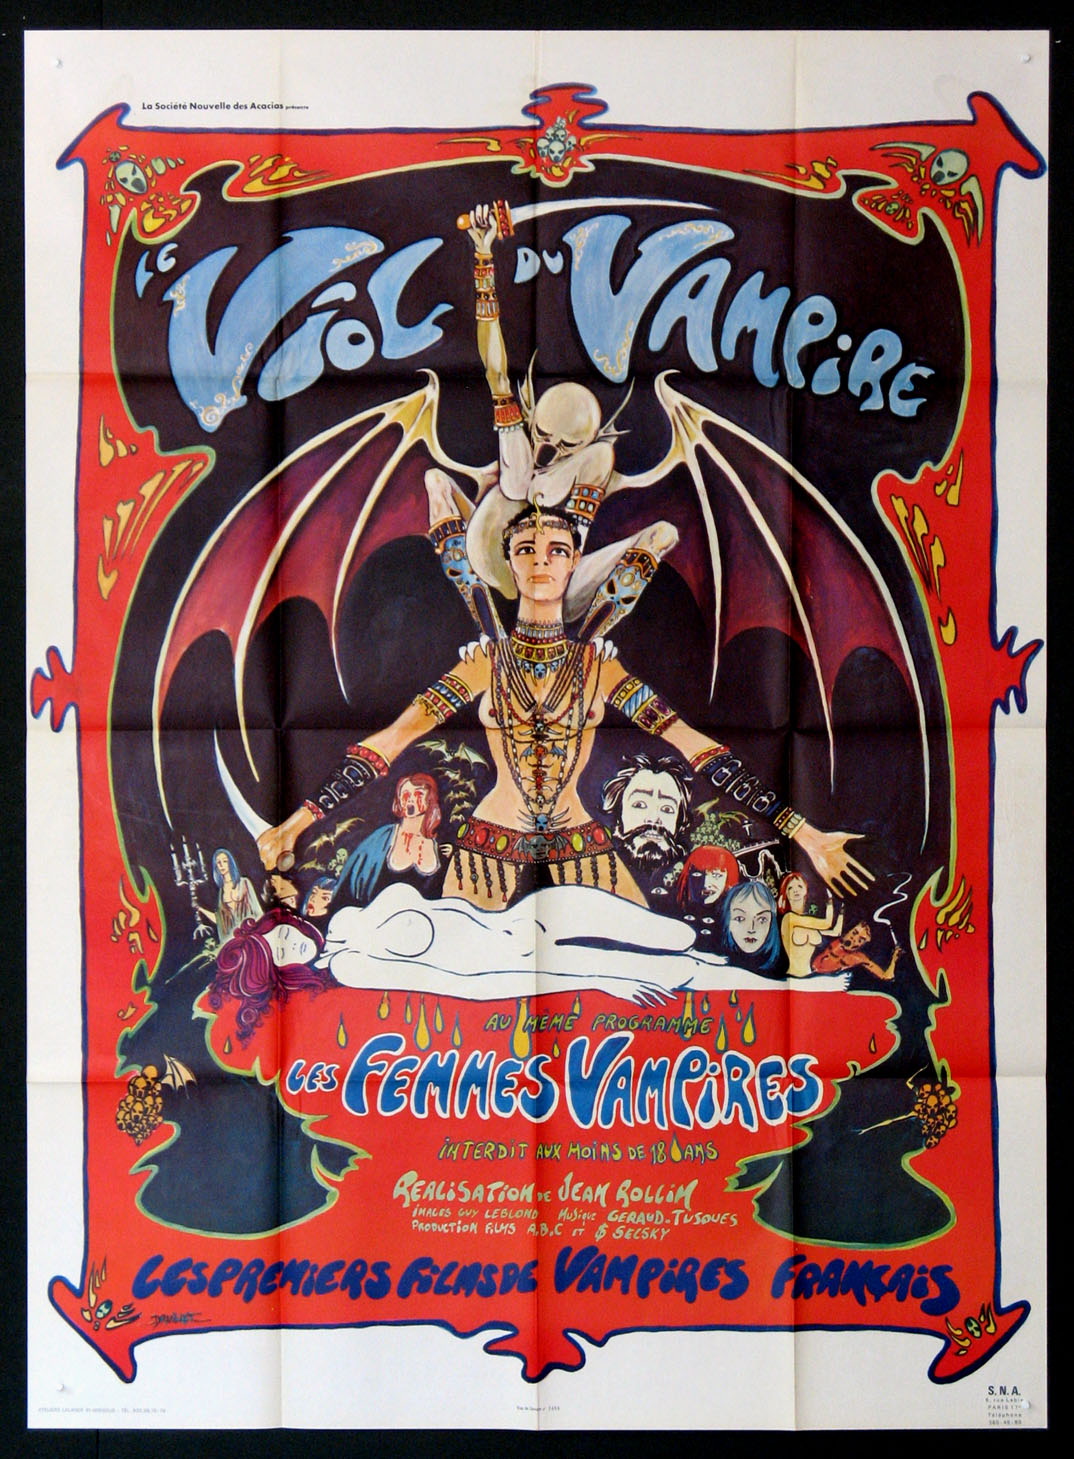 QUEEN OF THE VAMPIRES (aka Rape of the Vampires, Le Viol du Vampire) @ FilmPosters.com